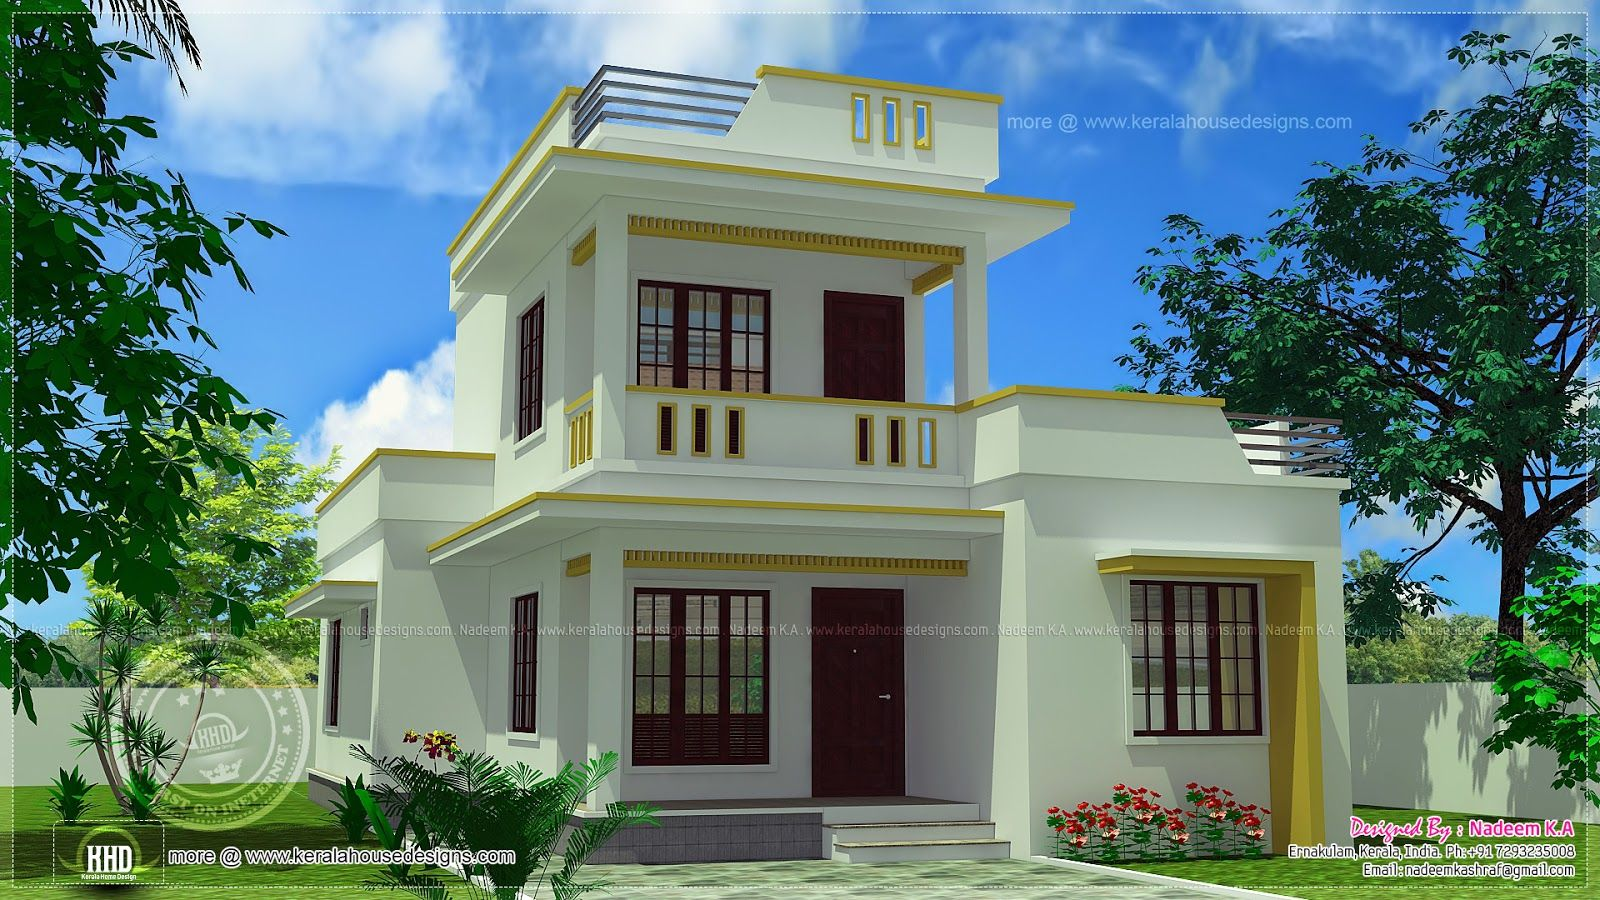 Roof home design feet kerala plans simple modern house for Building type house design